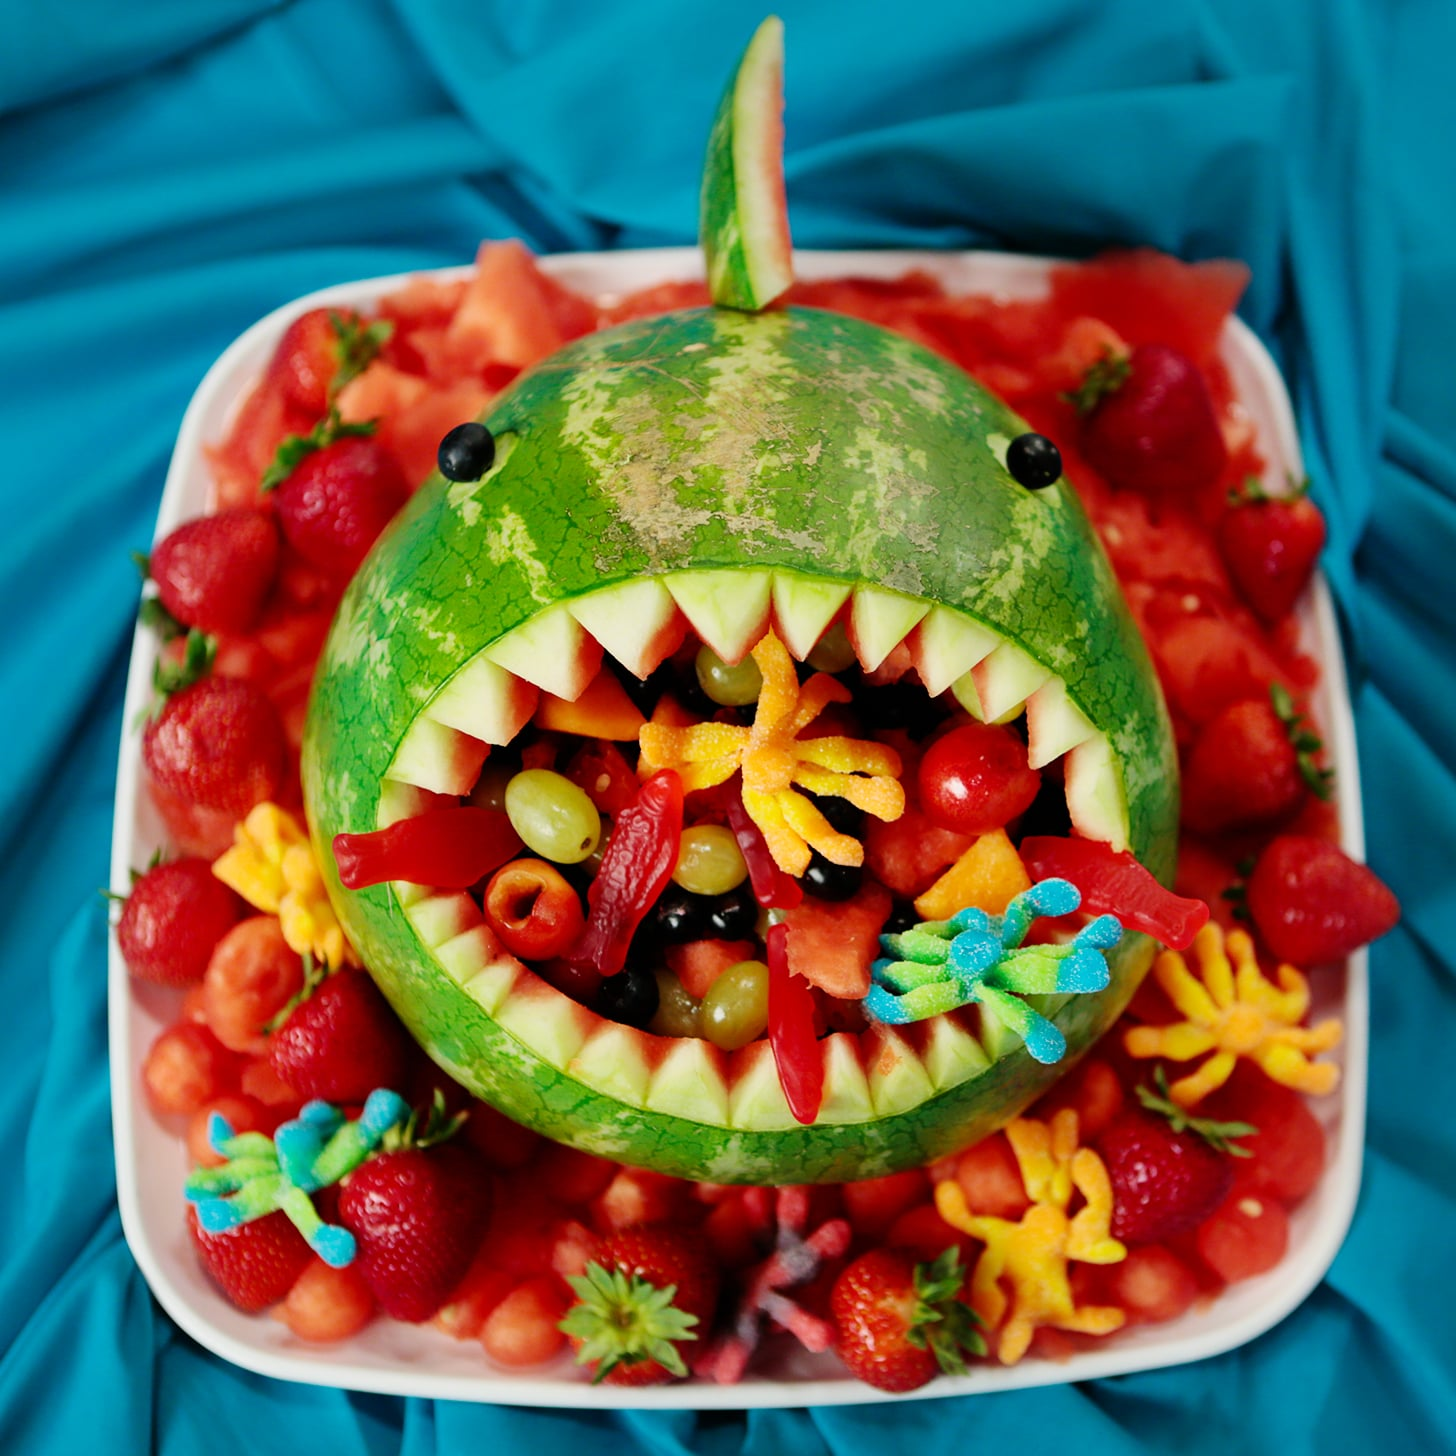 Sharknado's Delectable Fruit Watermelon